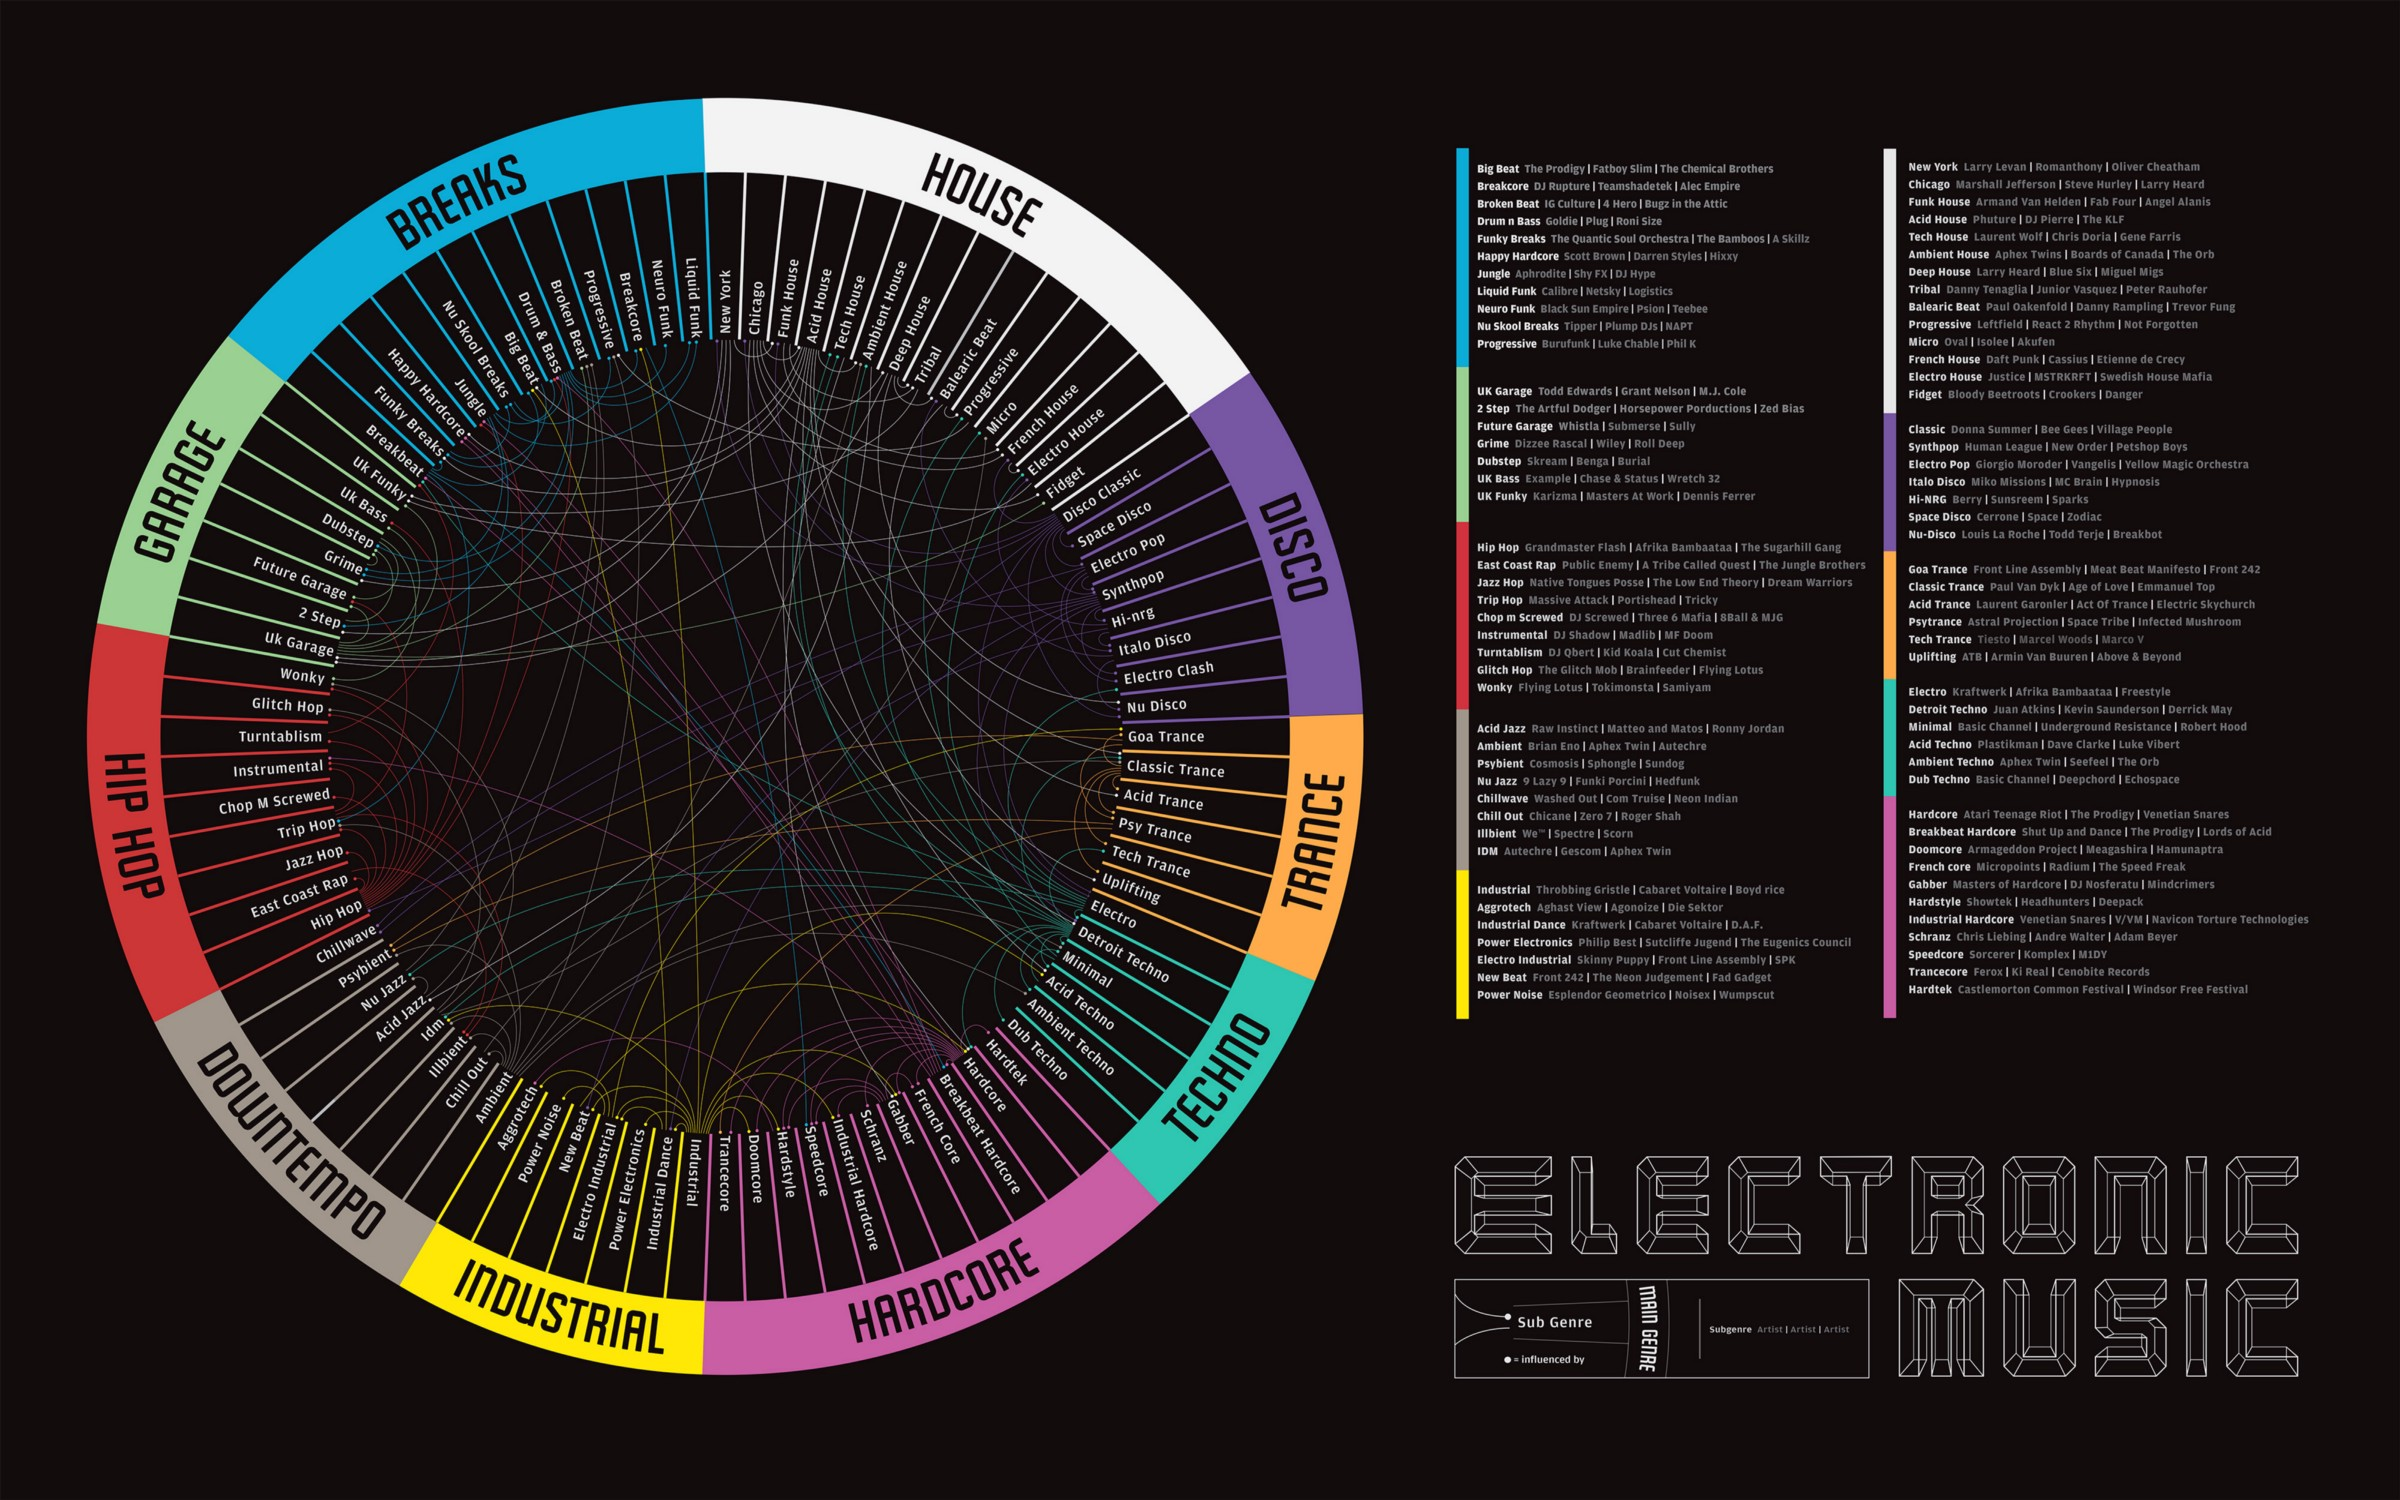 Electronica Medium Font Visualization How Electronic Music Subgenres Are Related To Each